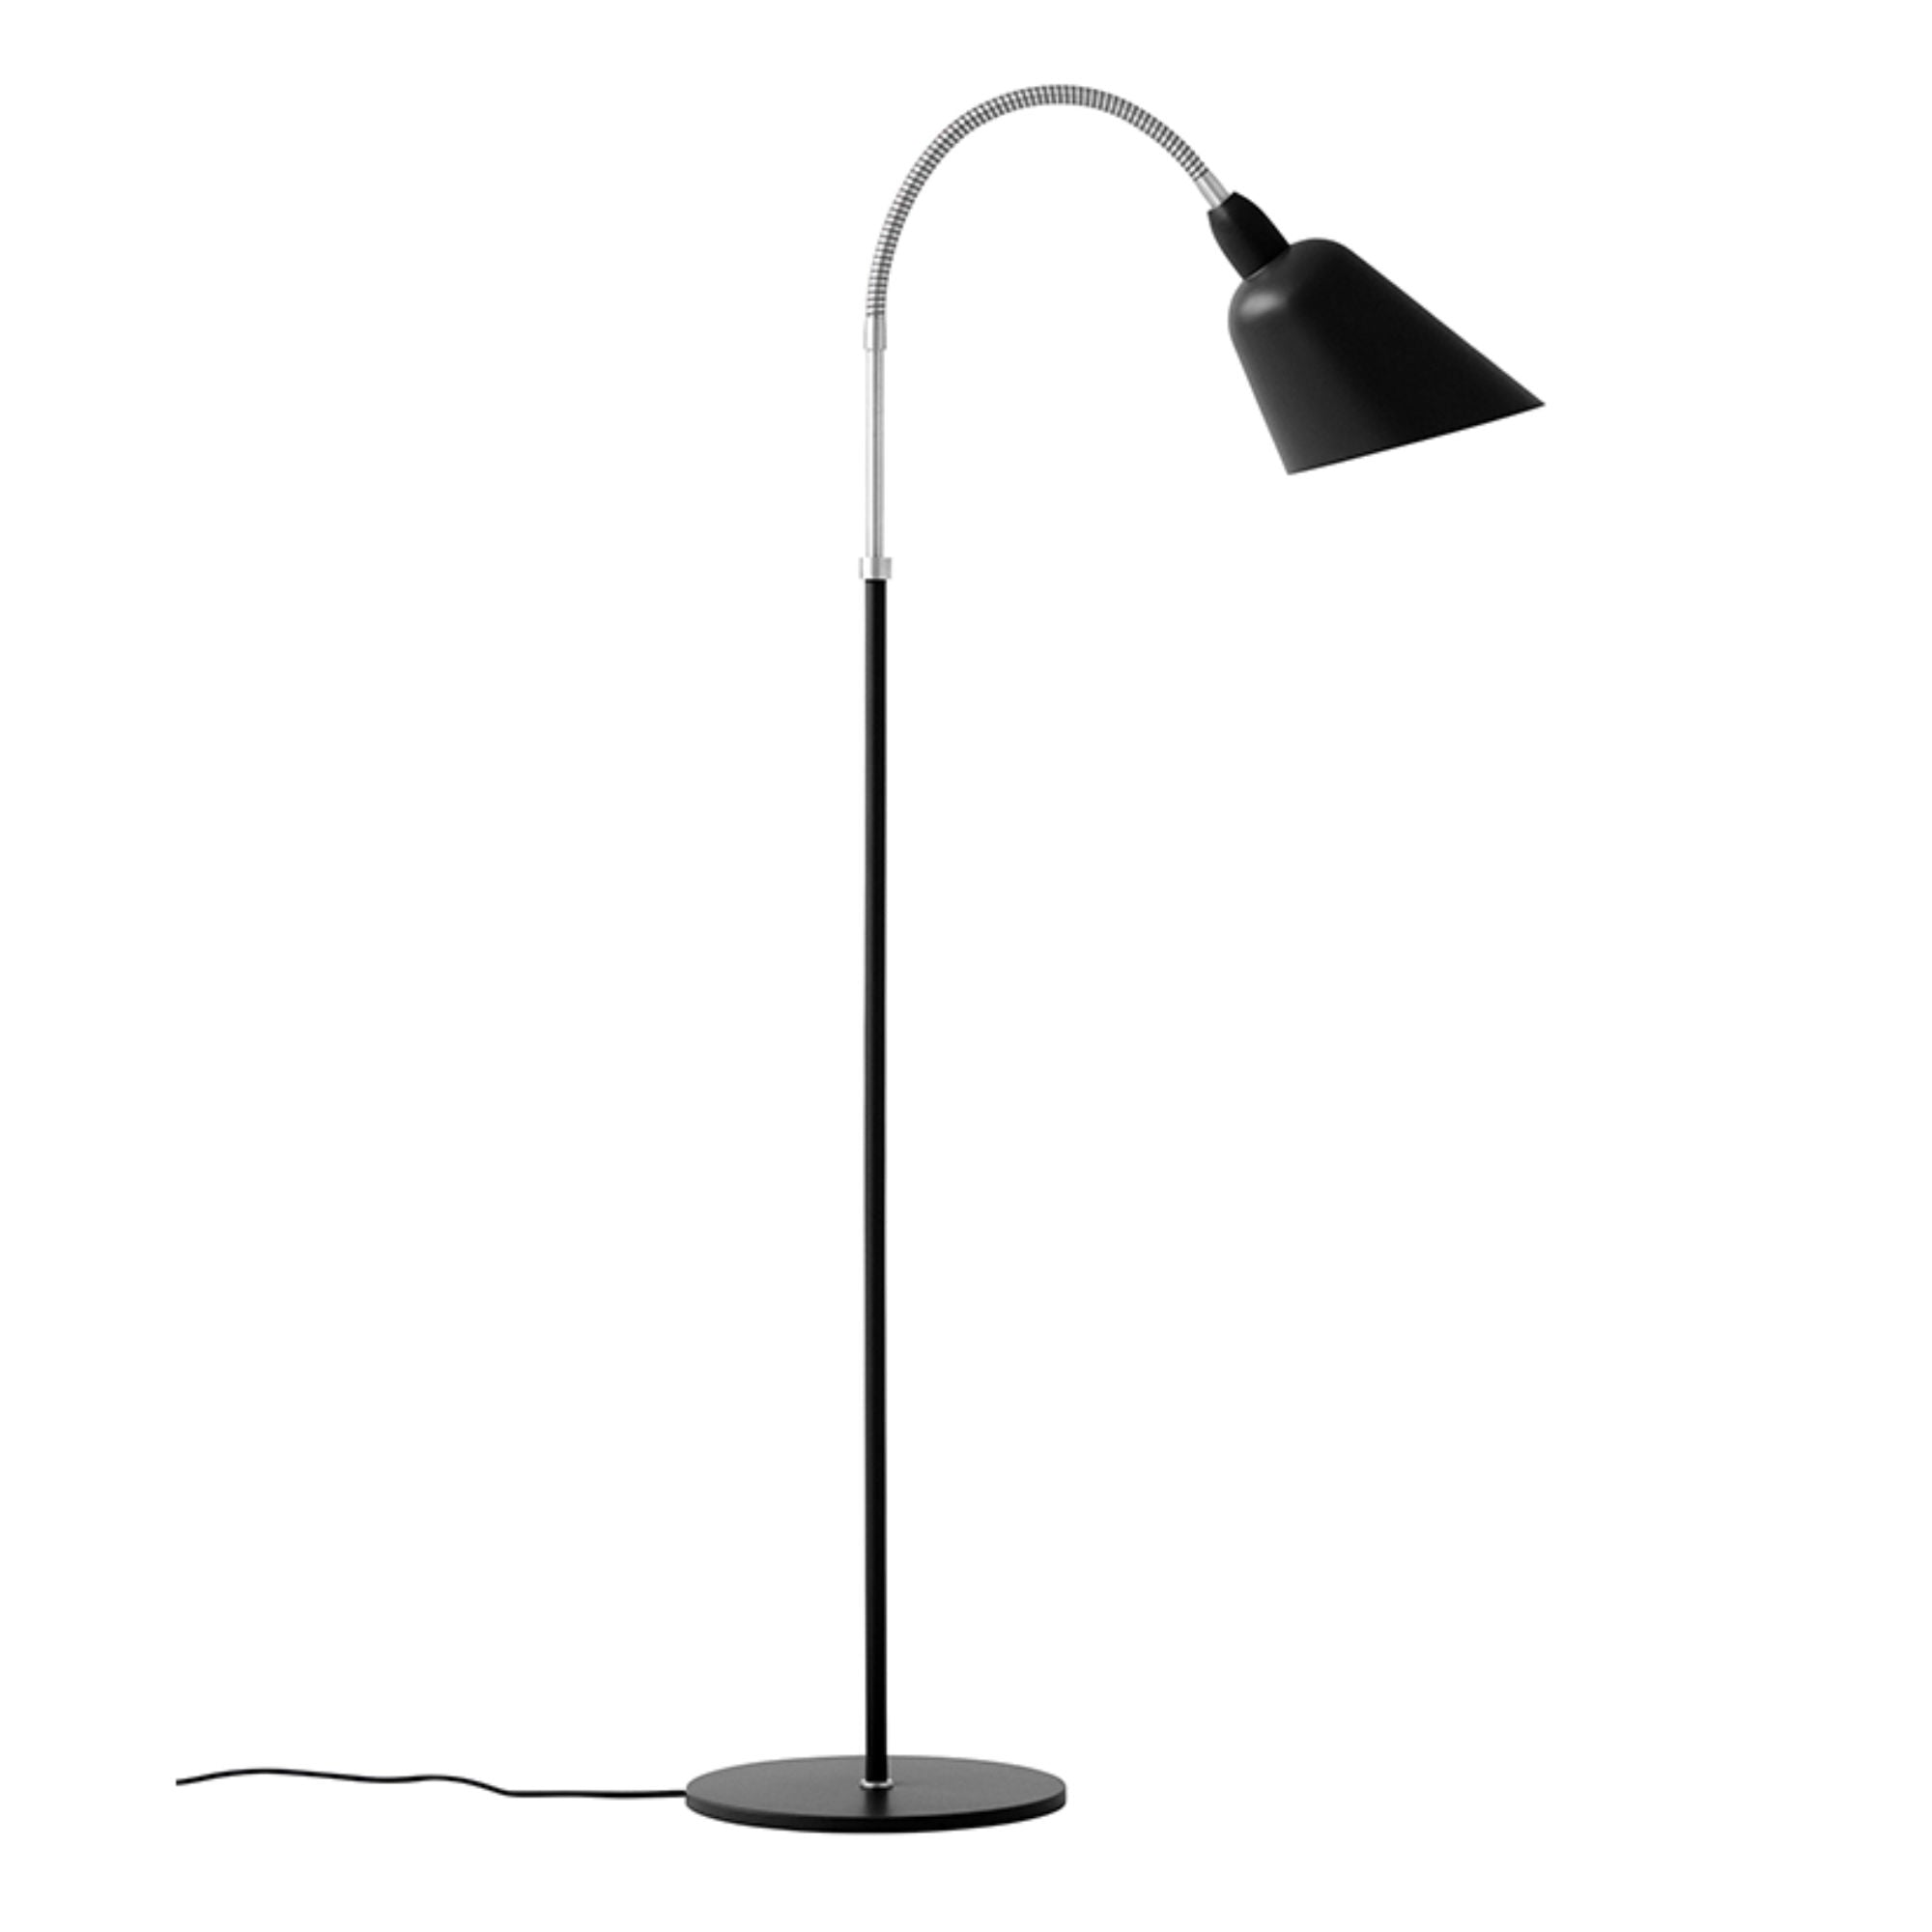 &Tradition AJ7 Bellevue floor lamp, black - steel